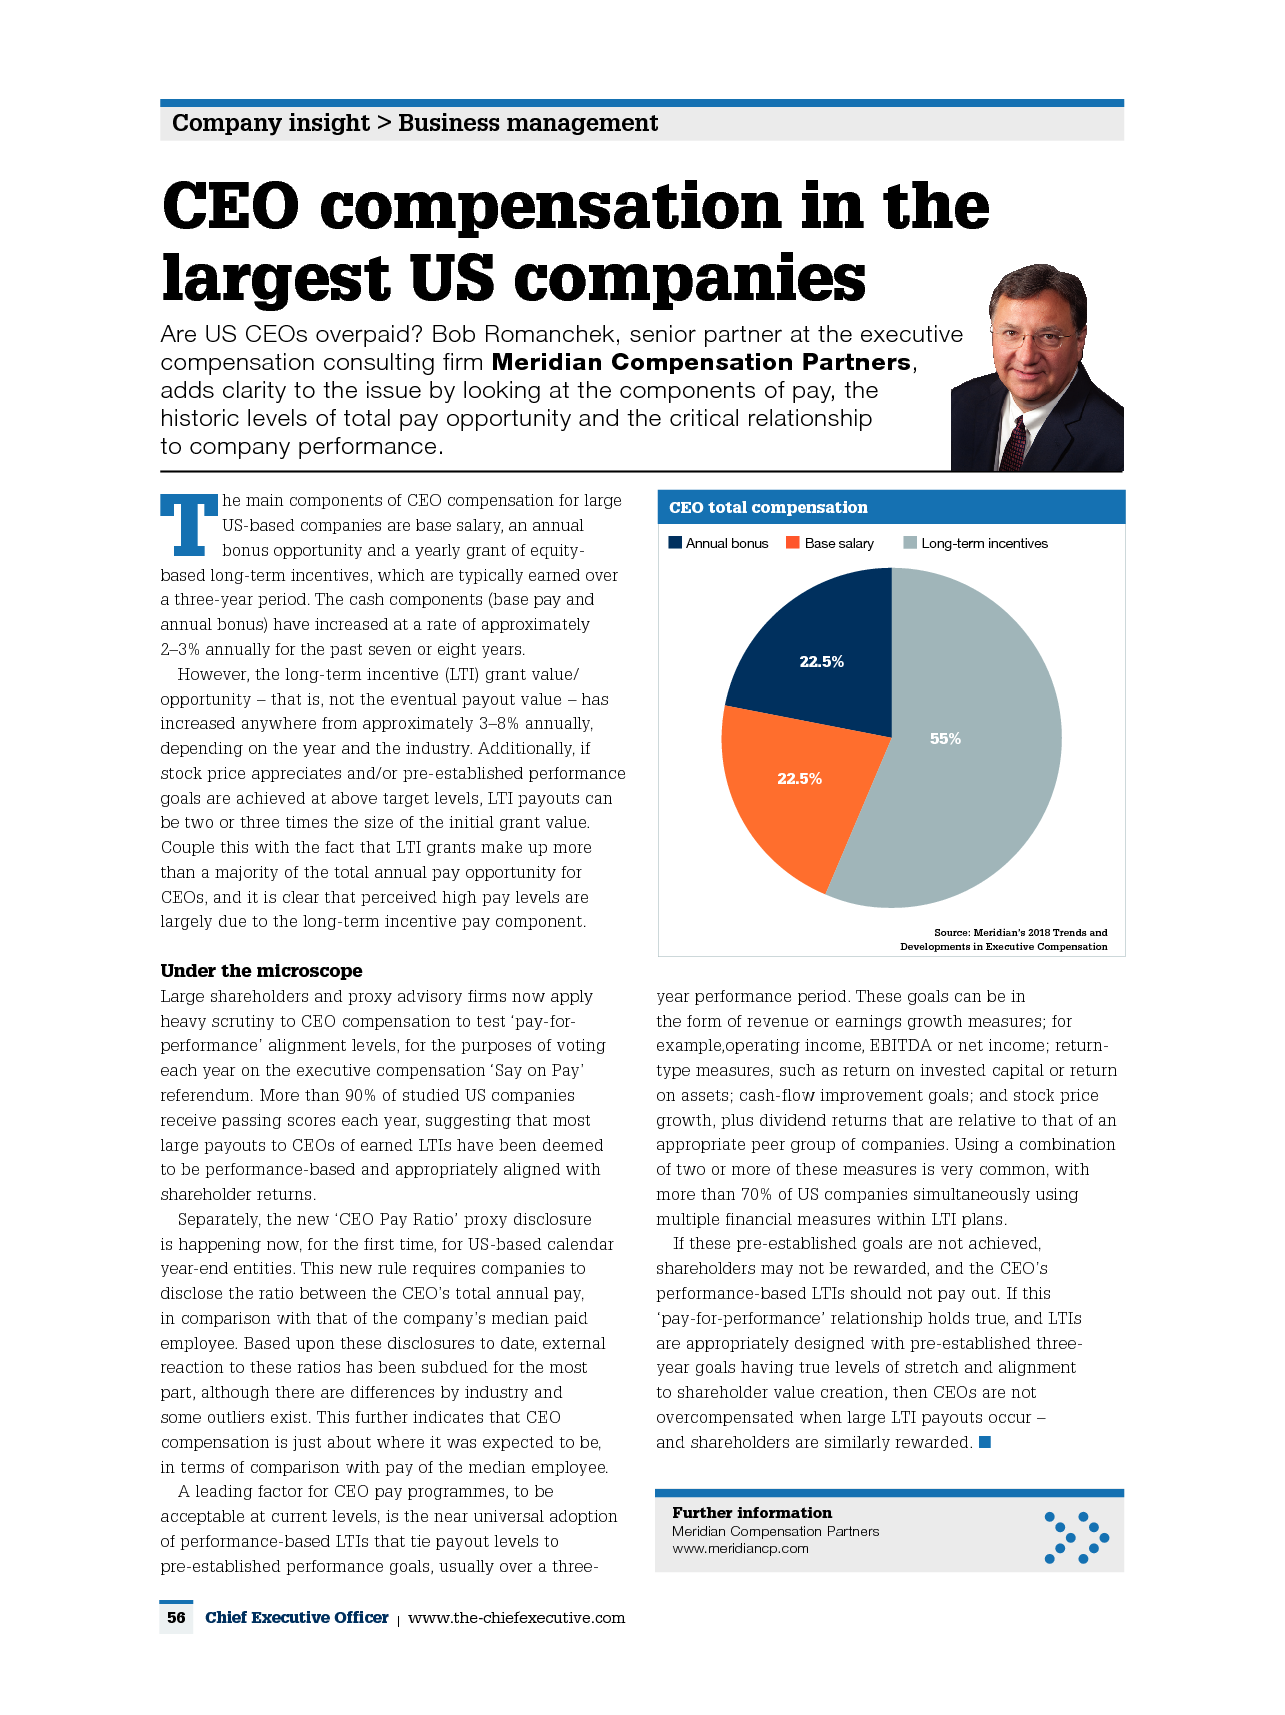 CEO Compensation in the Largest US Companies (PDF)